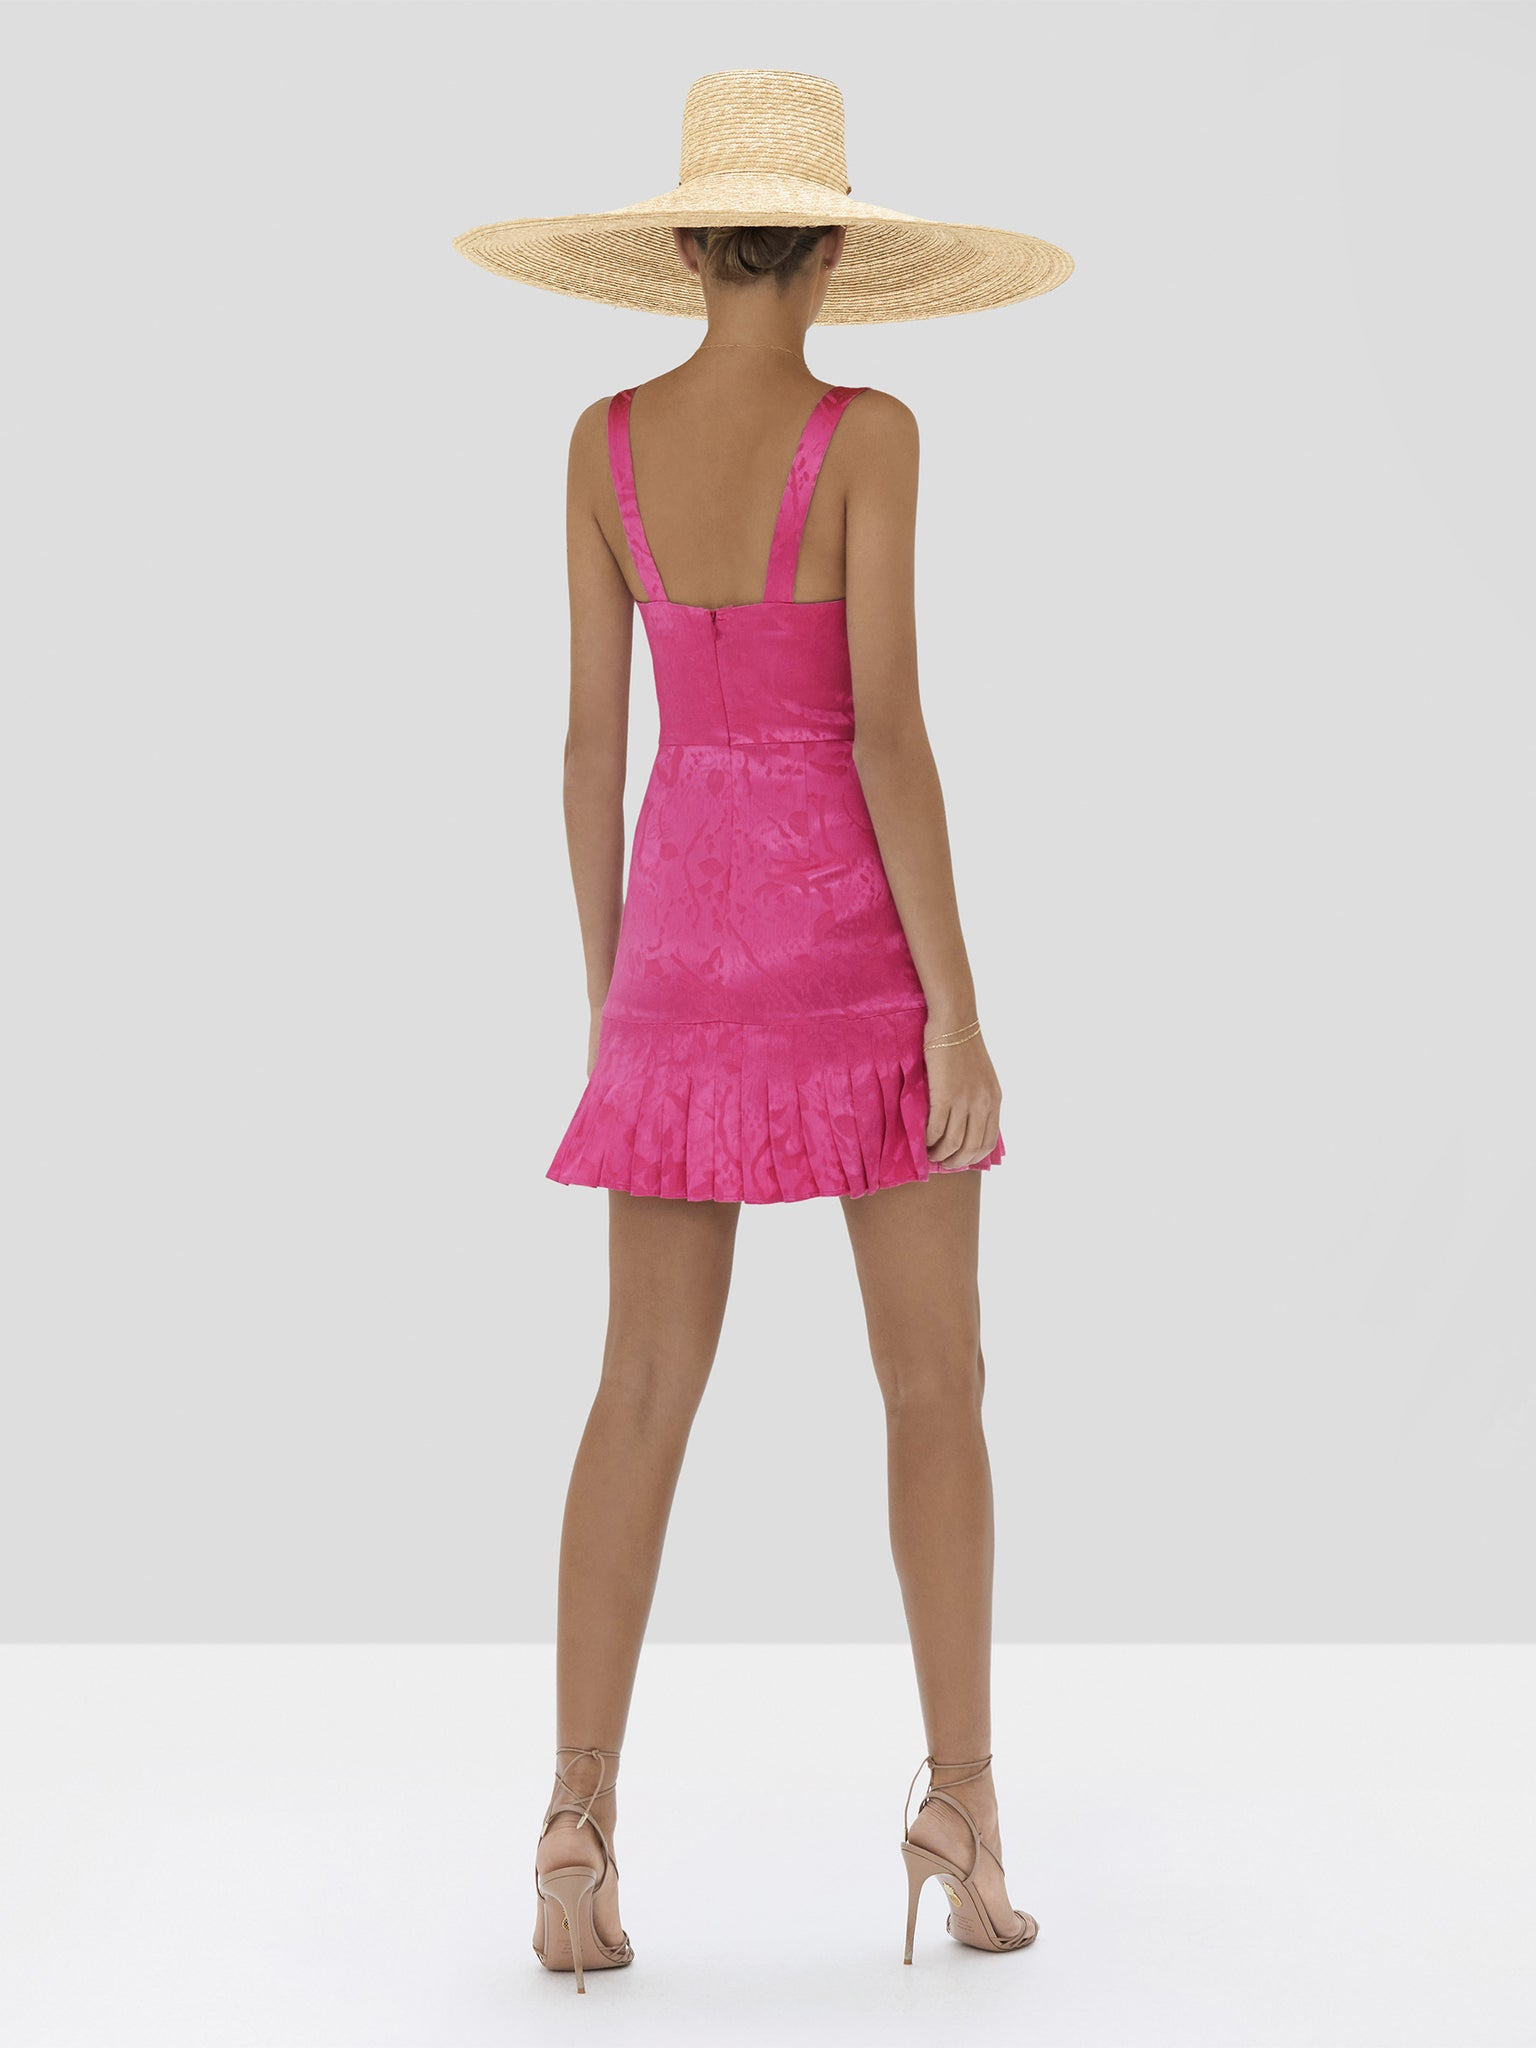 Alexis Alys Dress in Vivid Fuschia from Spring Summer 2020 Collection - Rear View